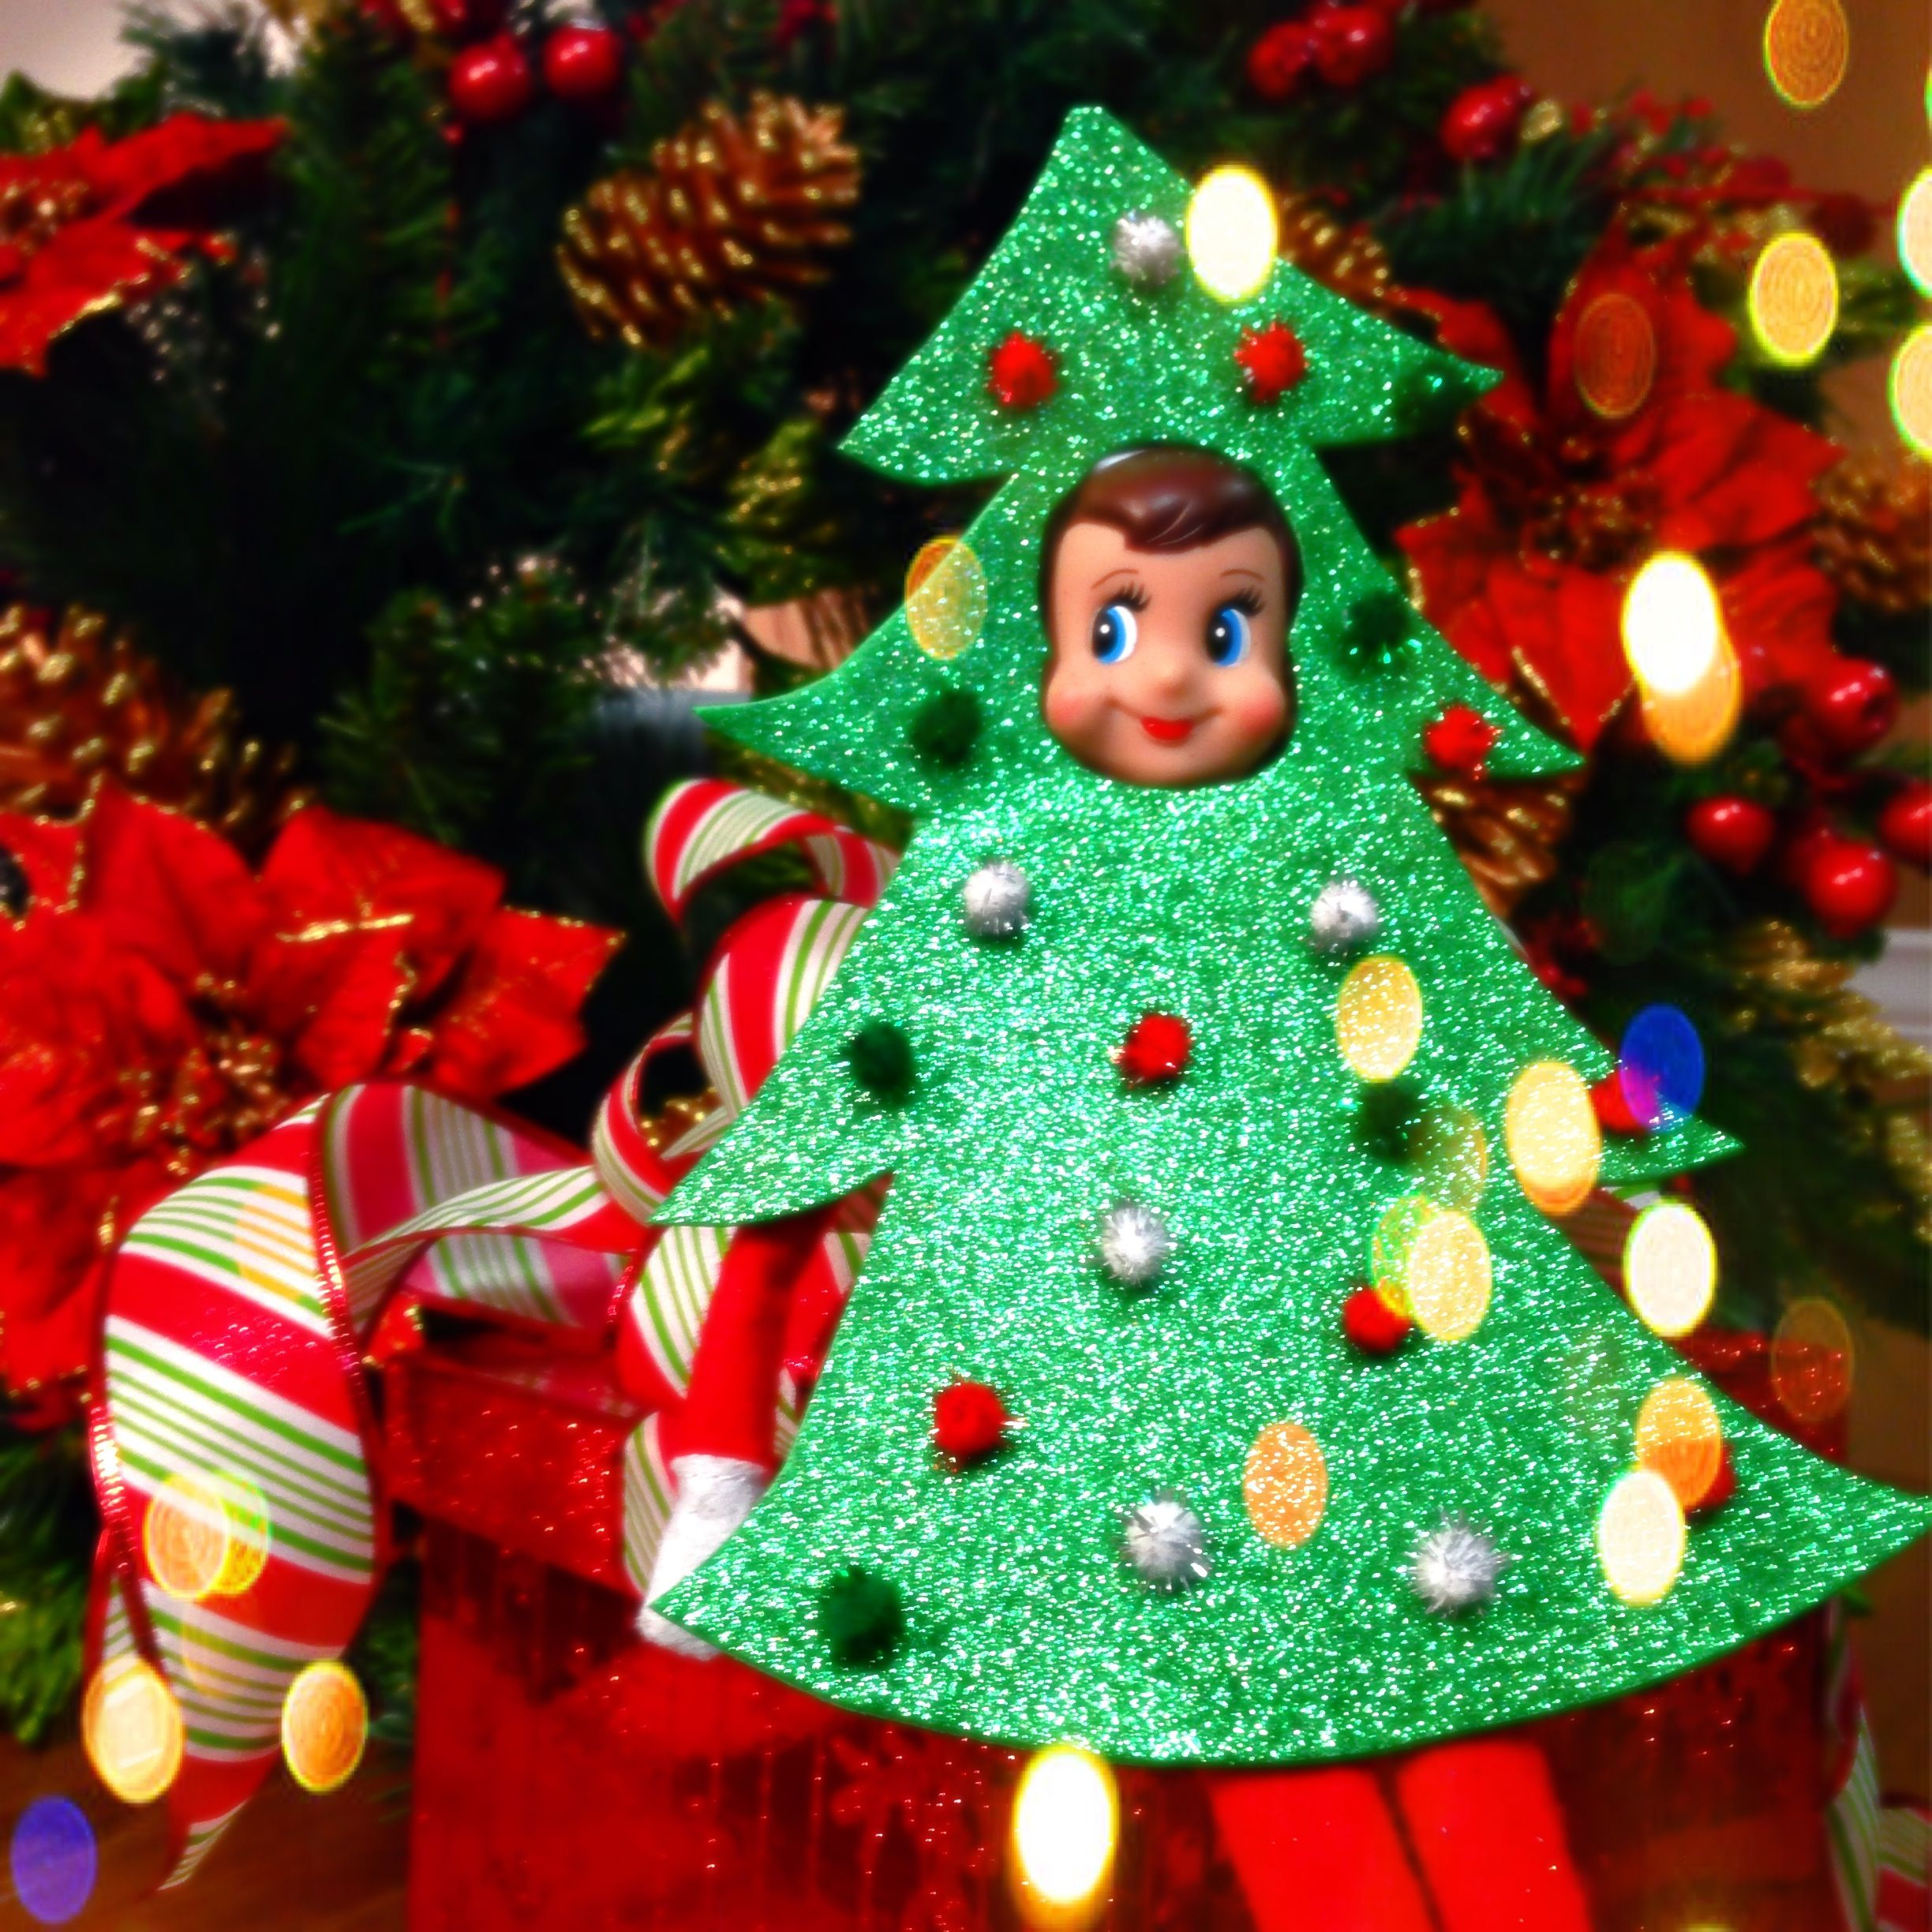 Pre Dressed Christmas Trees: Elf On The Shelf - Christmas Tree In 2019